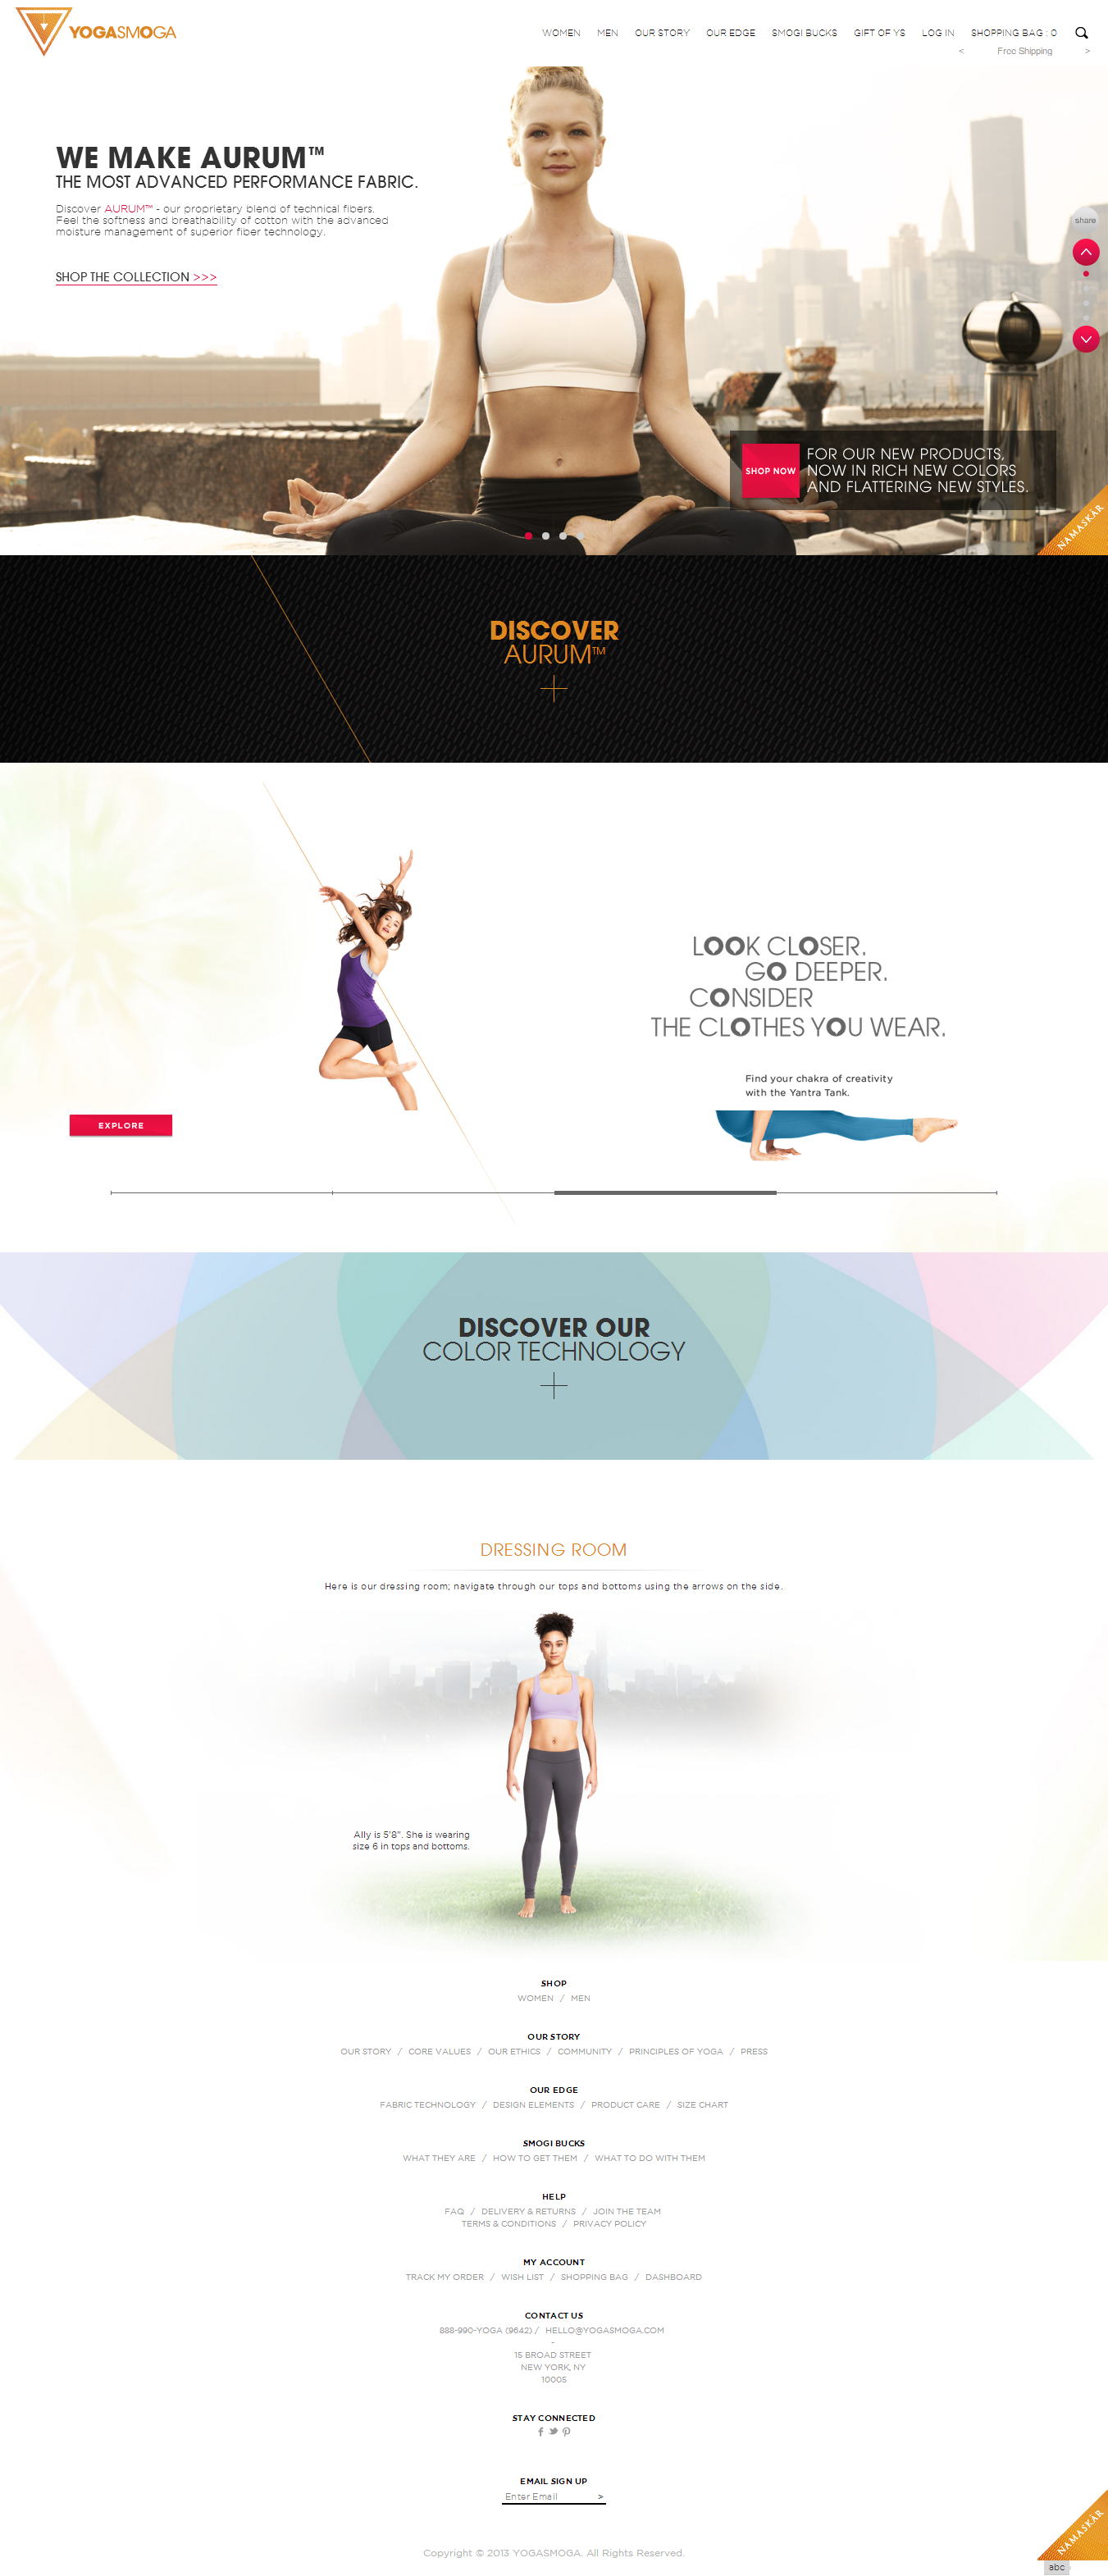 YOGASMOGA Yoga Clothes Running Spin and Athletic Workout Apparel.